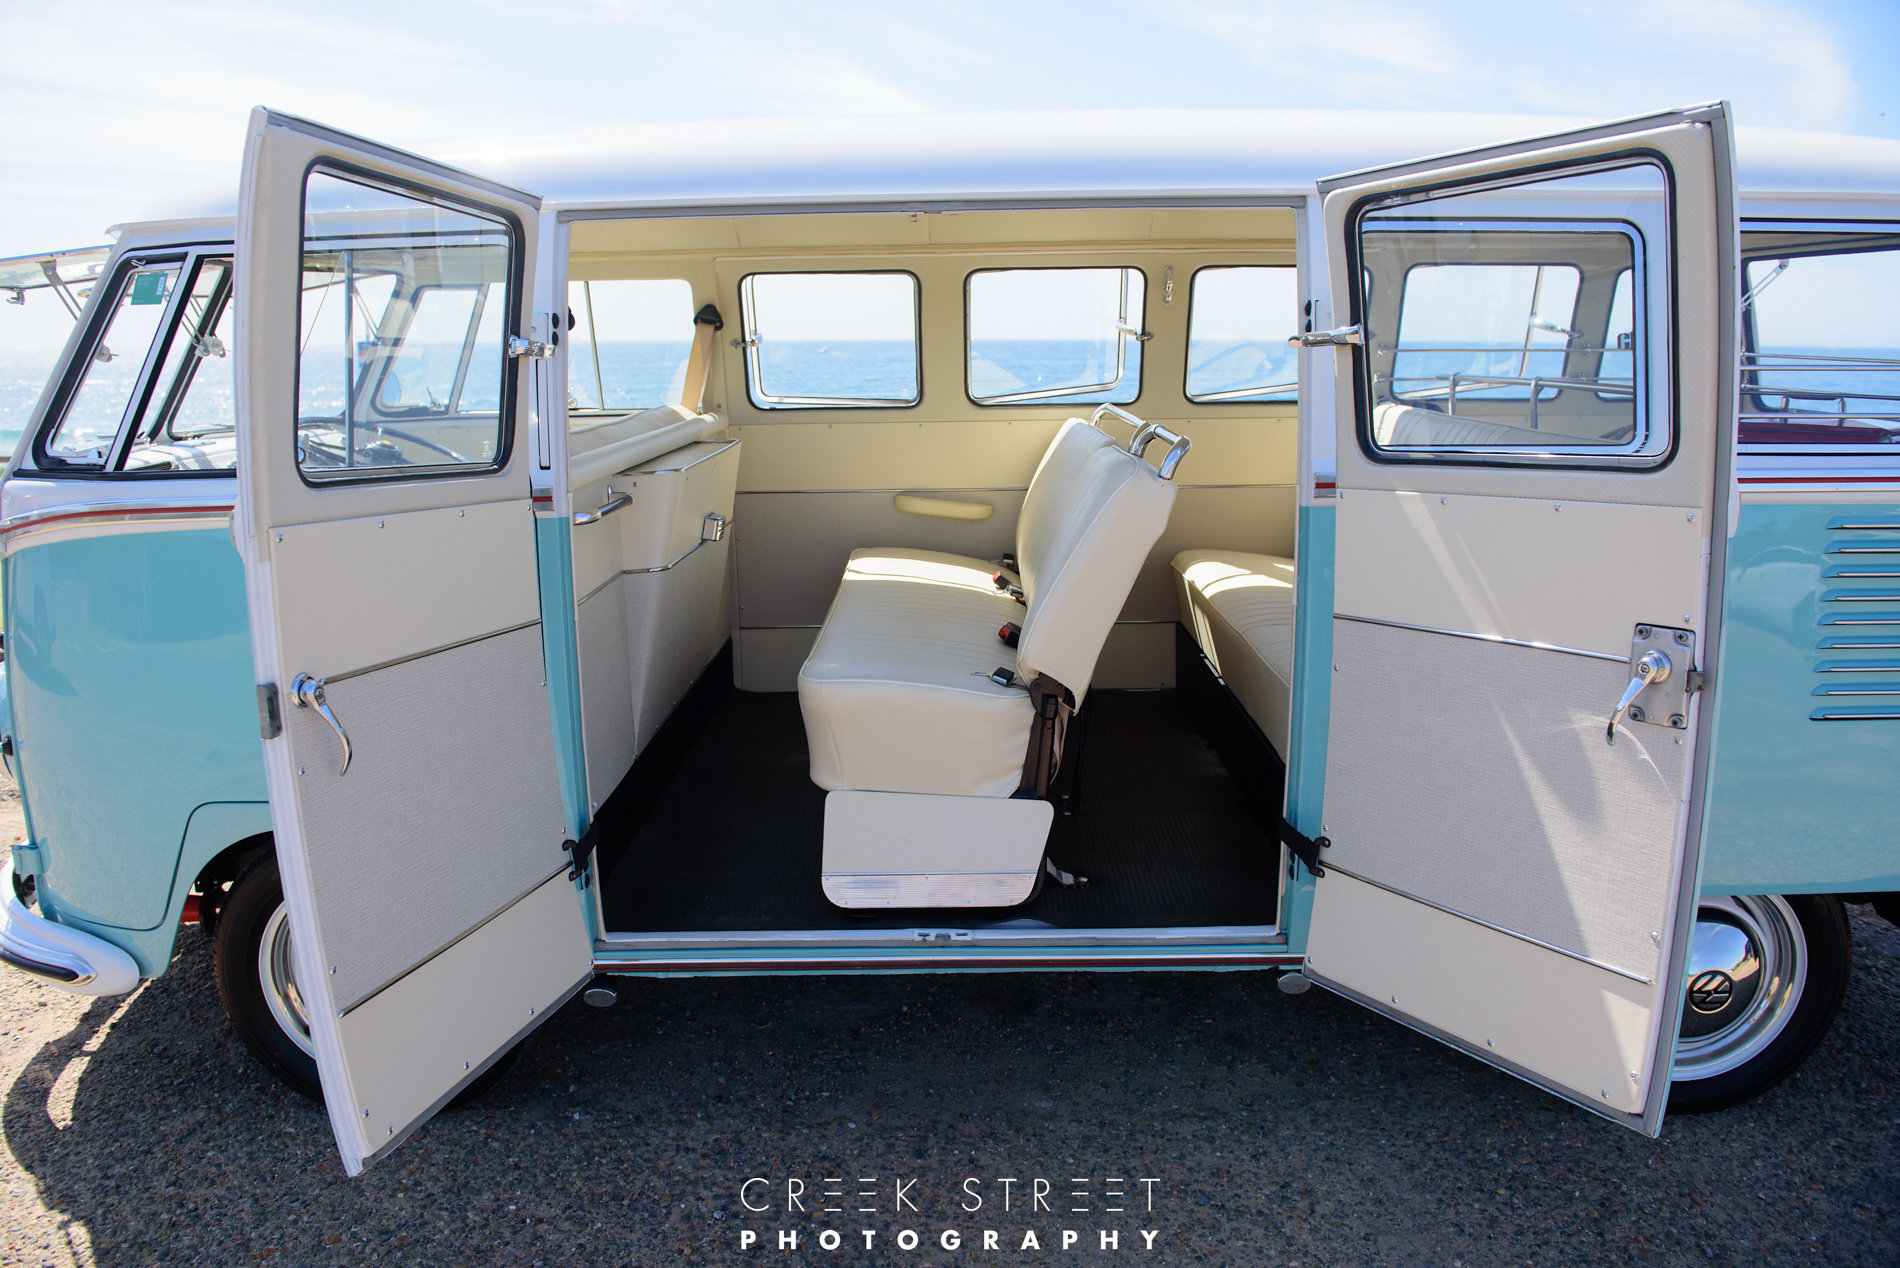 Evie spent months in Melbourne with Volkswagen interior specialist, Bus n Bugs for her interior fitout. Her restoration is true to her vintage & Volkswagen heritage. No expense has been spared as she has been restored to the very highest standard. Even her seats are the original Volkswagen spring and coconut fibre. -